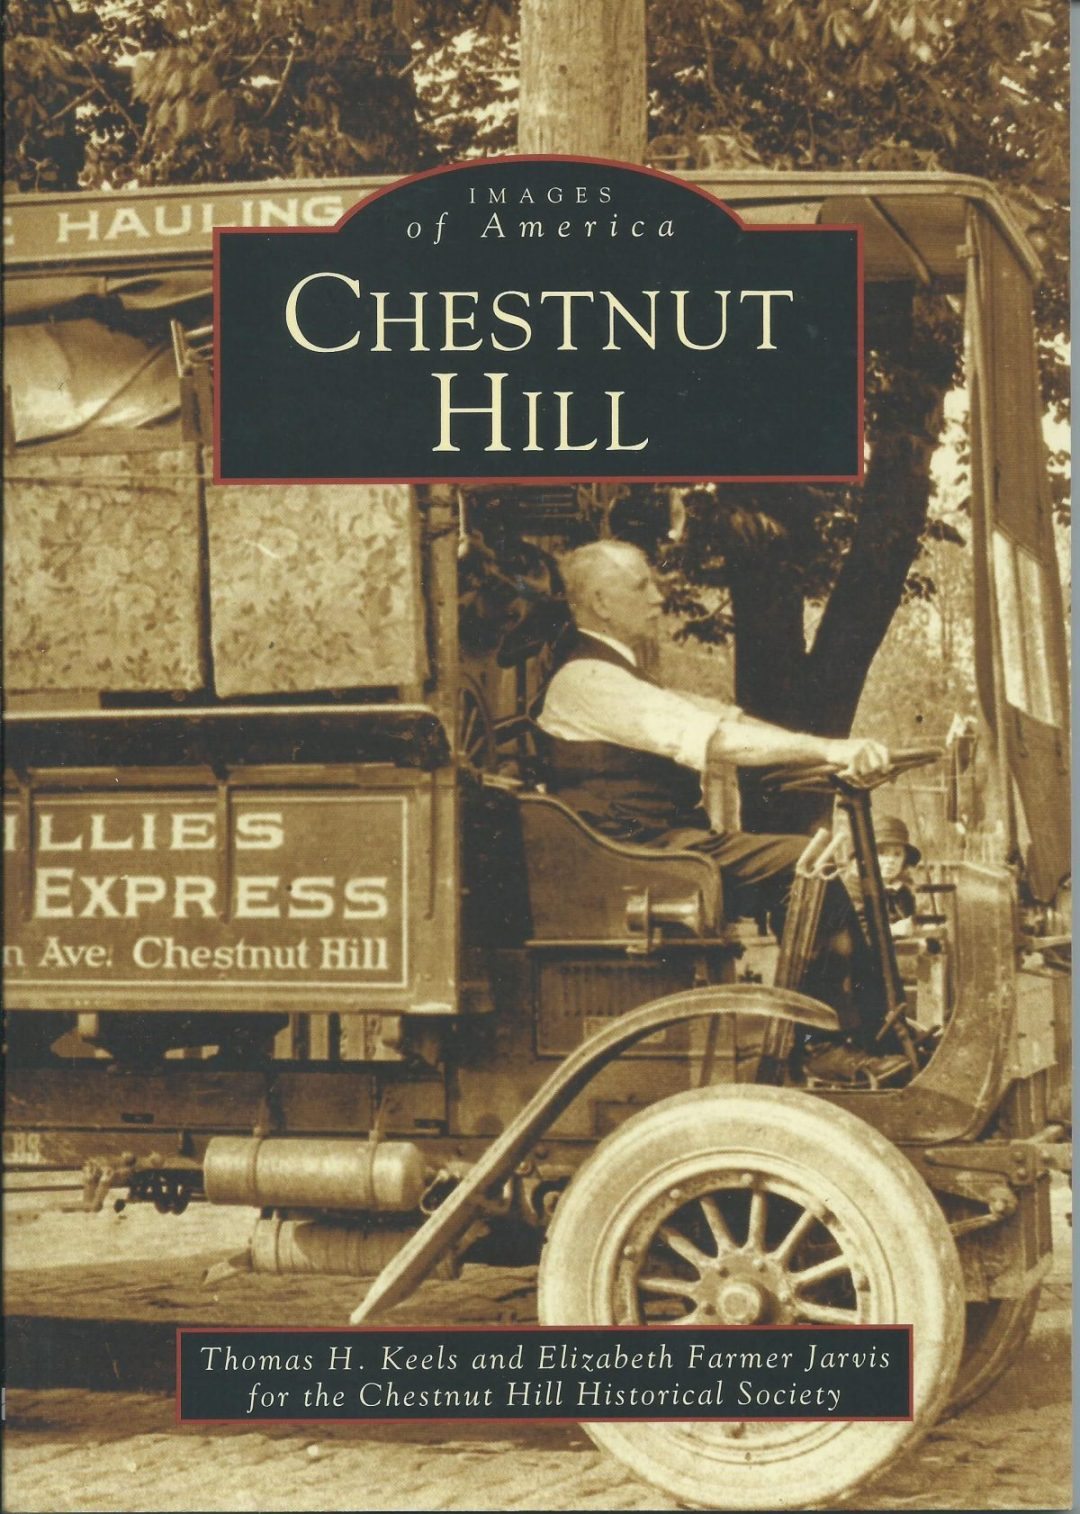 2002, 2004 – Publication of Images of America: Chestnut Hill and Chestnut Hill Revisited